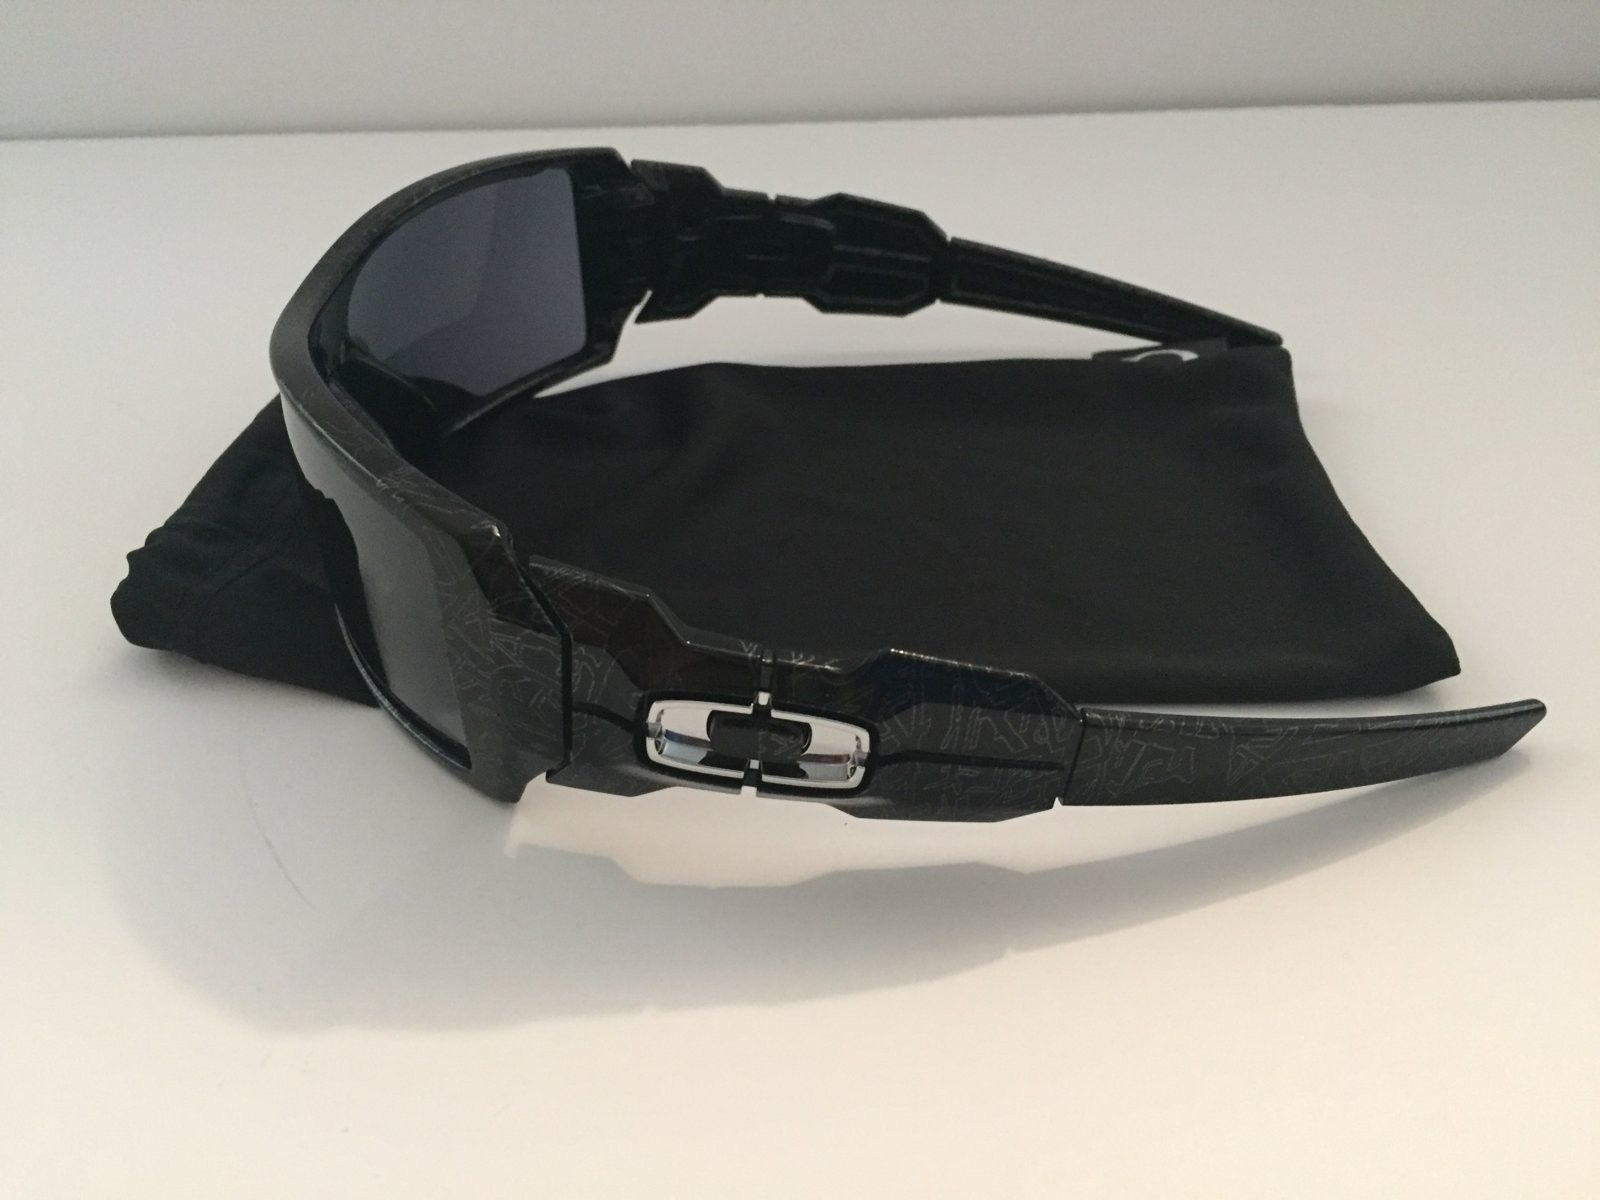 Few pairs of used Oakley's for sale. ONLY TWO LEFT. PRICE DROP 9-26-16 - image.jpeg